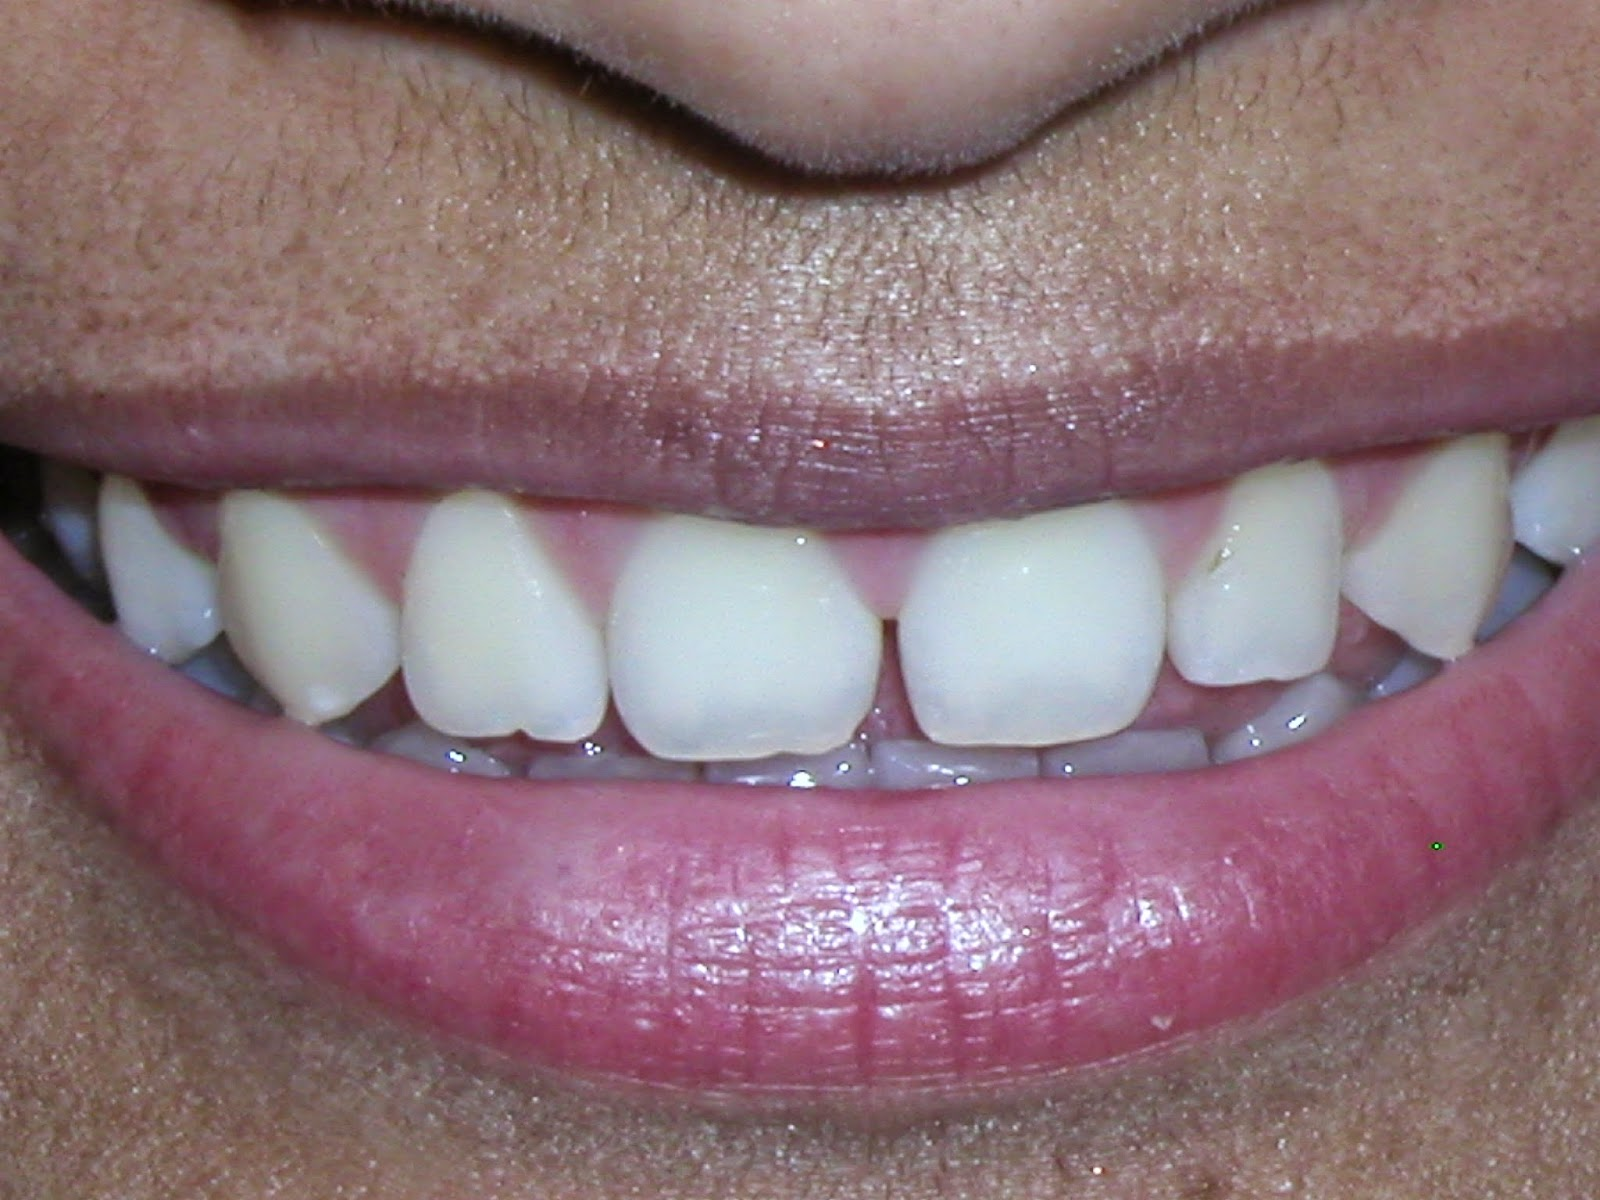 Porcelain veneers are a simple solution